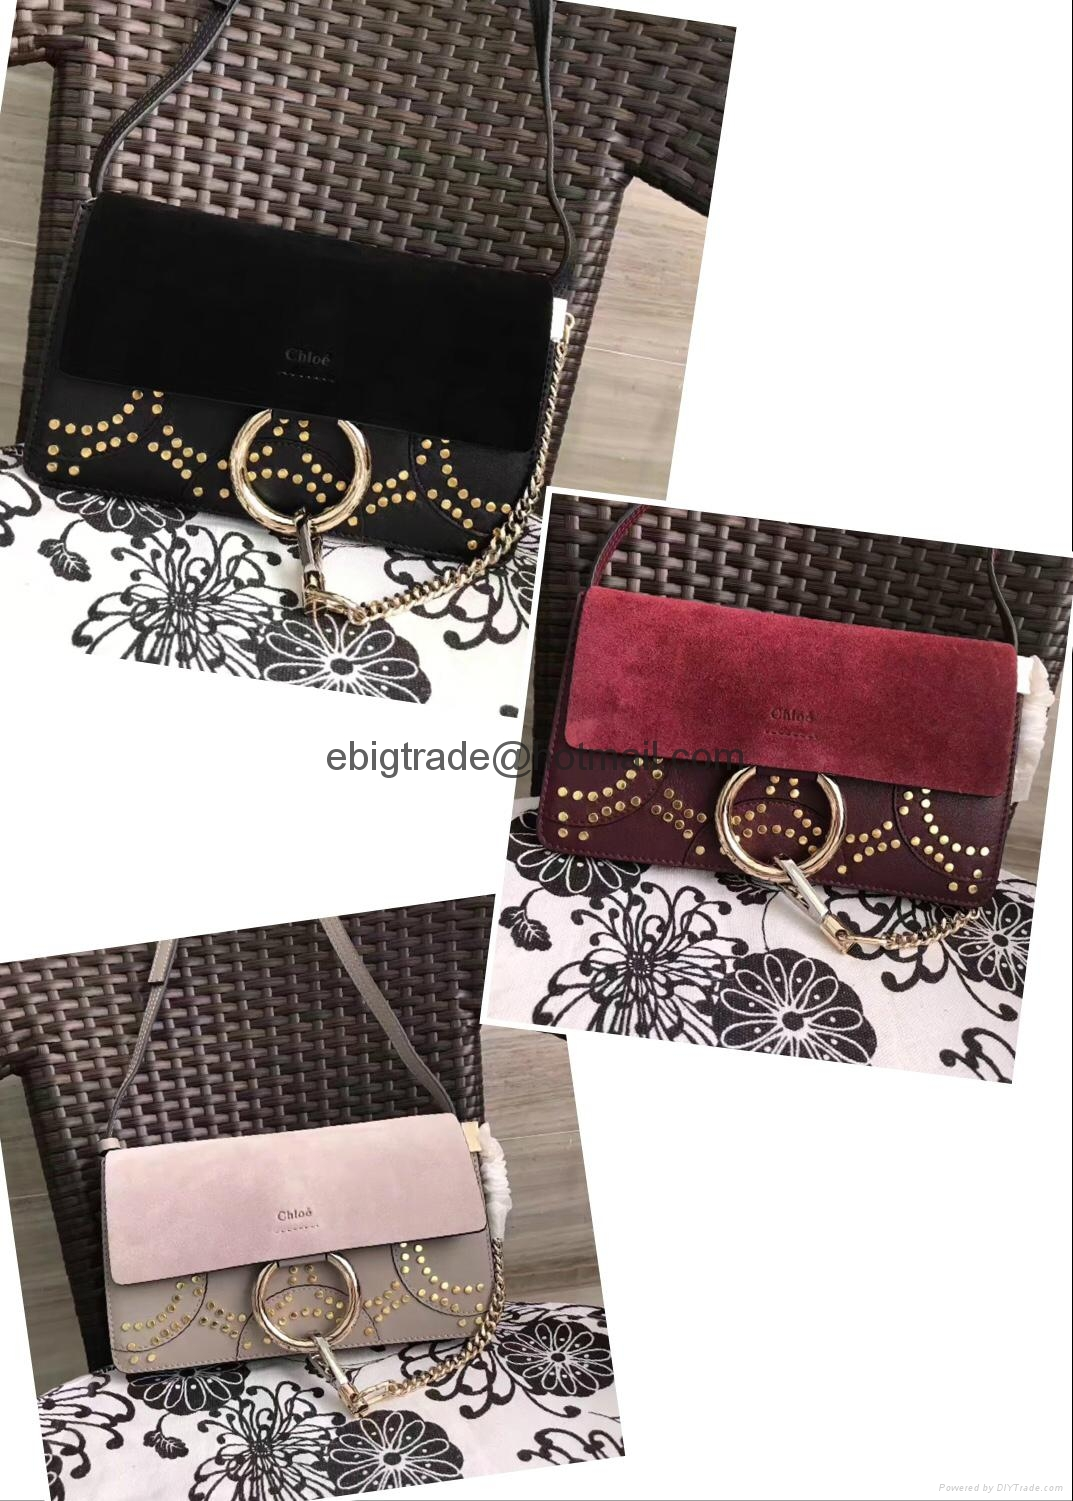 Chloe handbags for sale